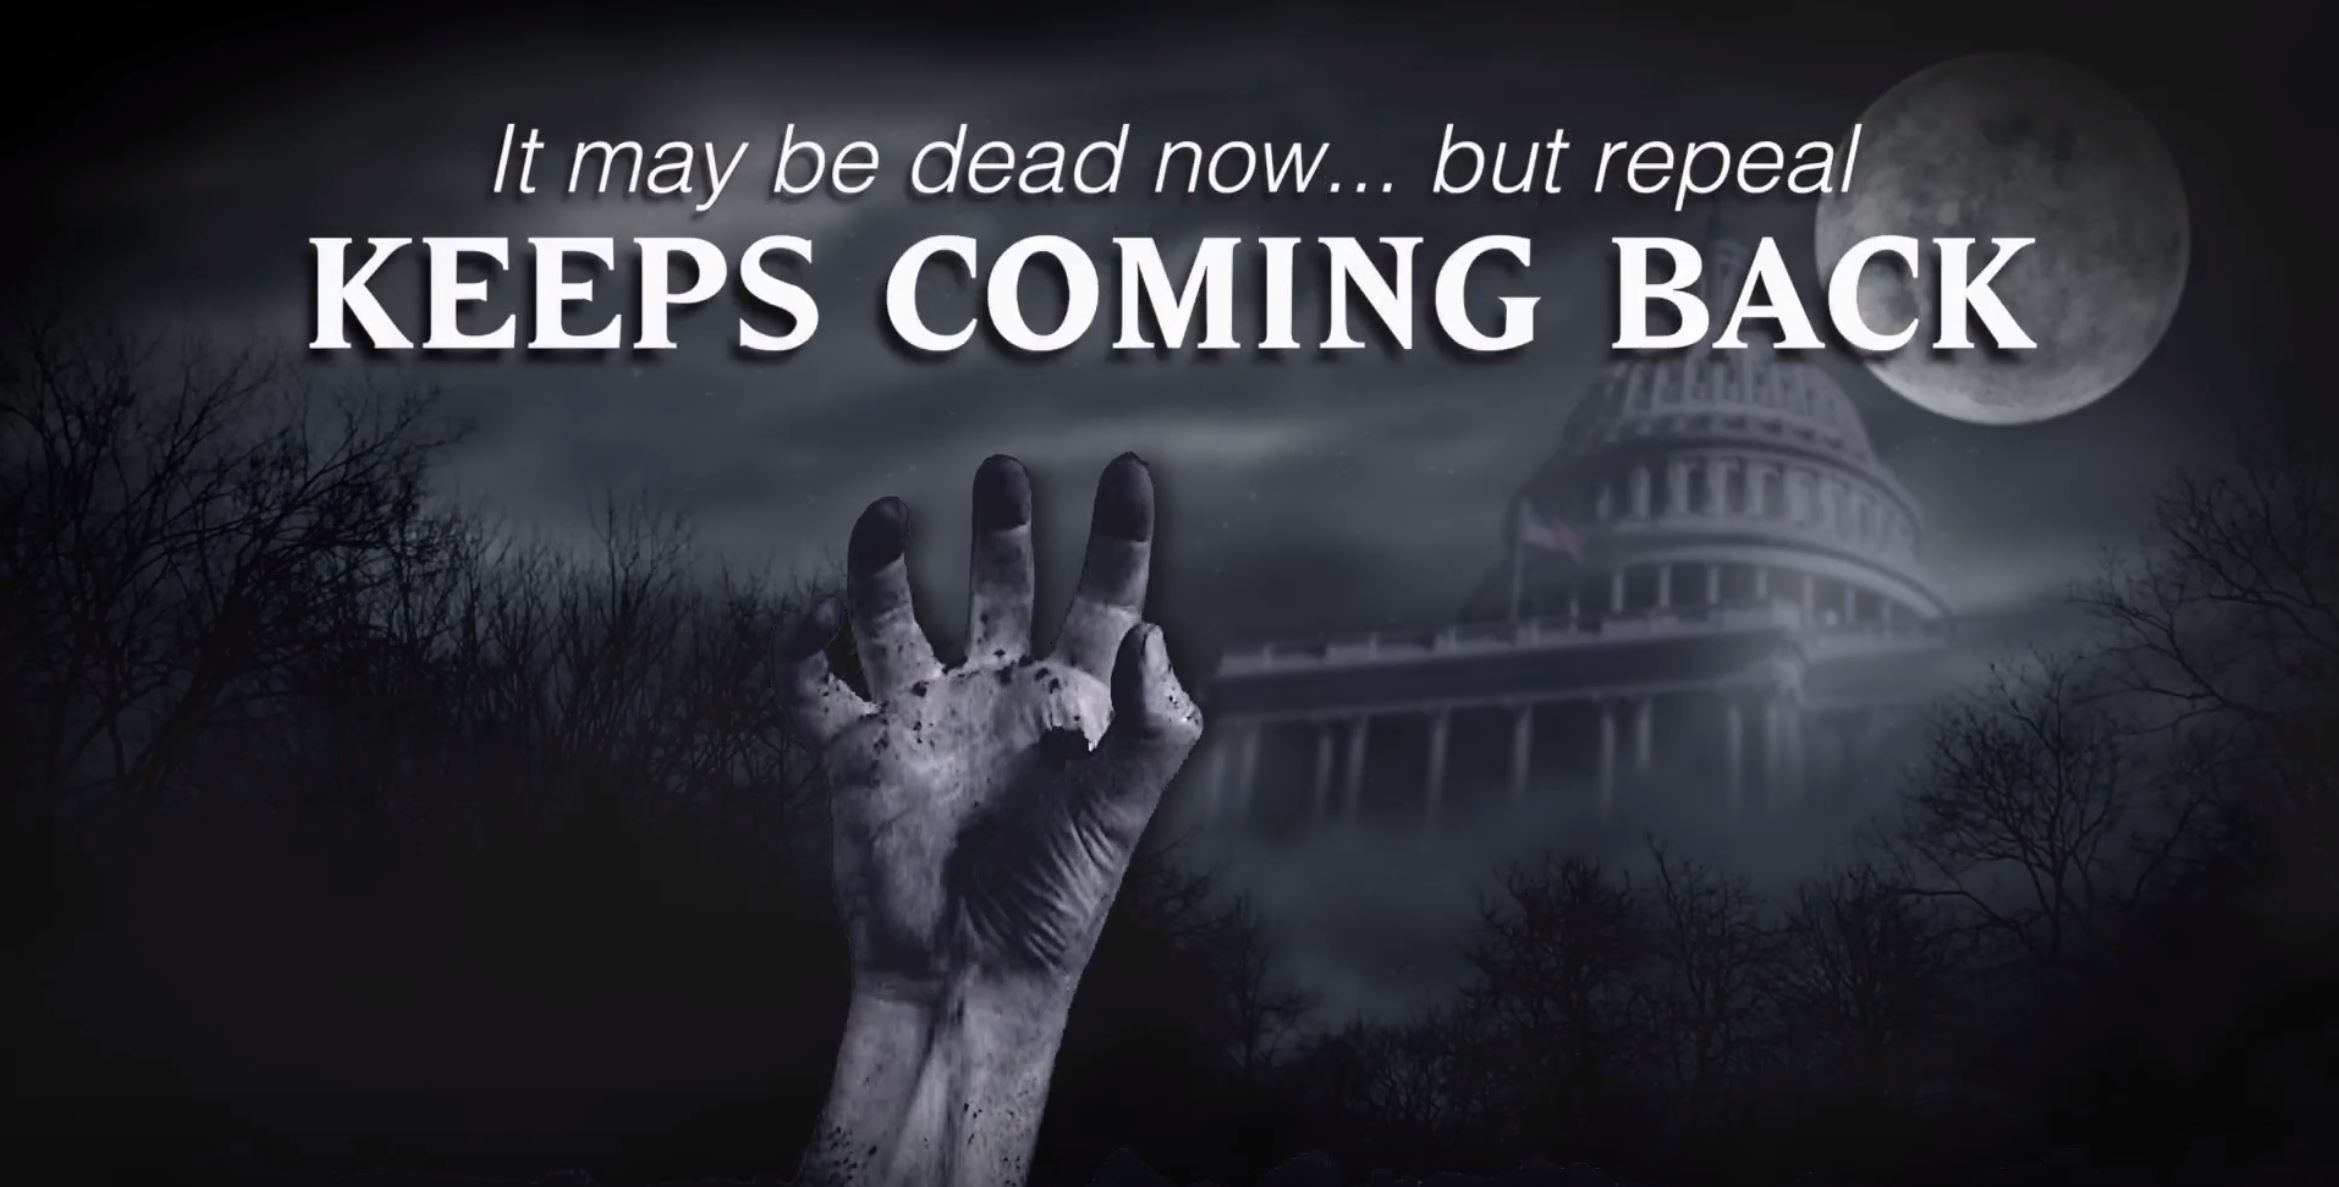 repeal zombie